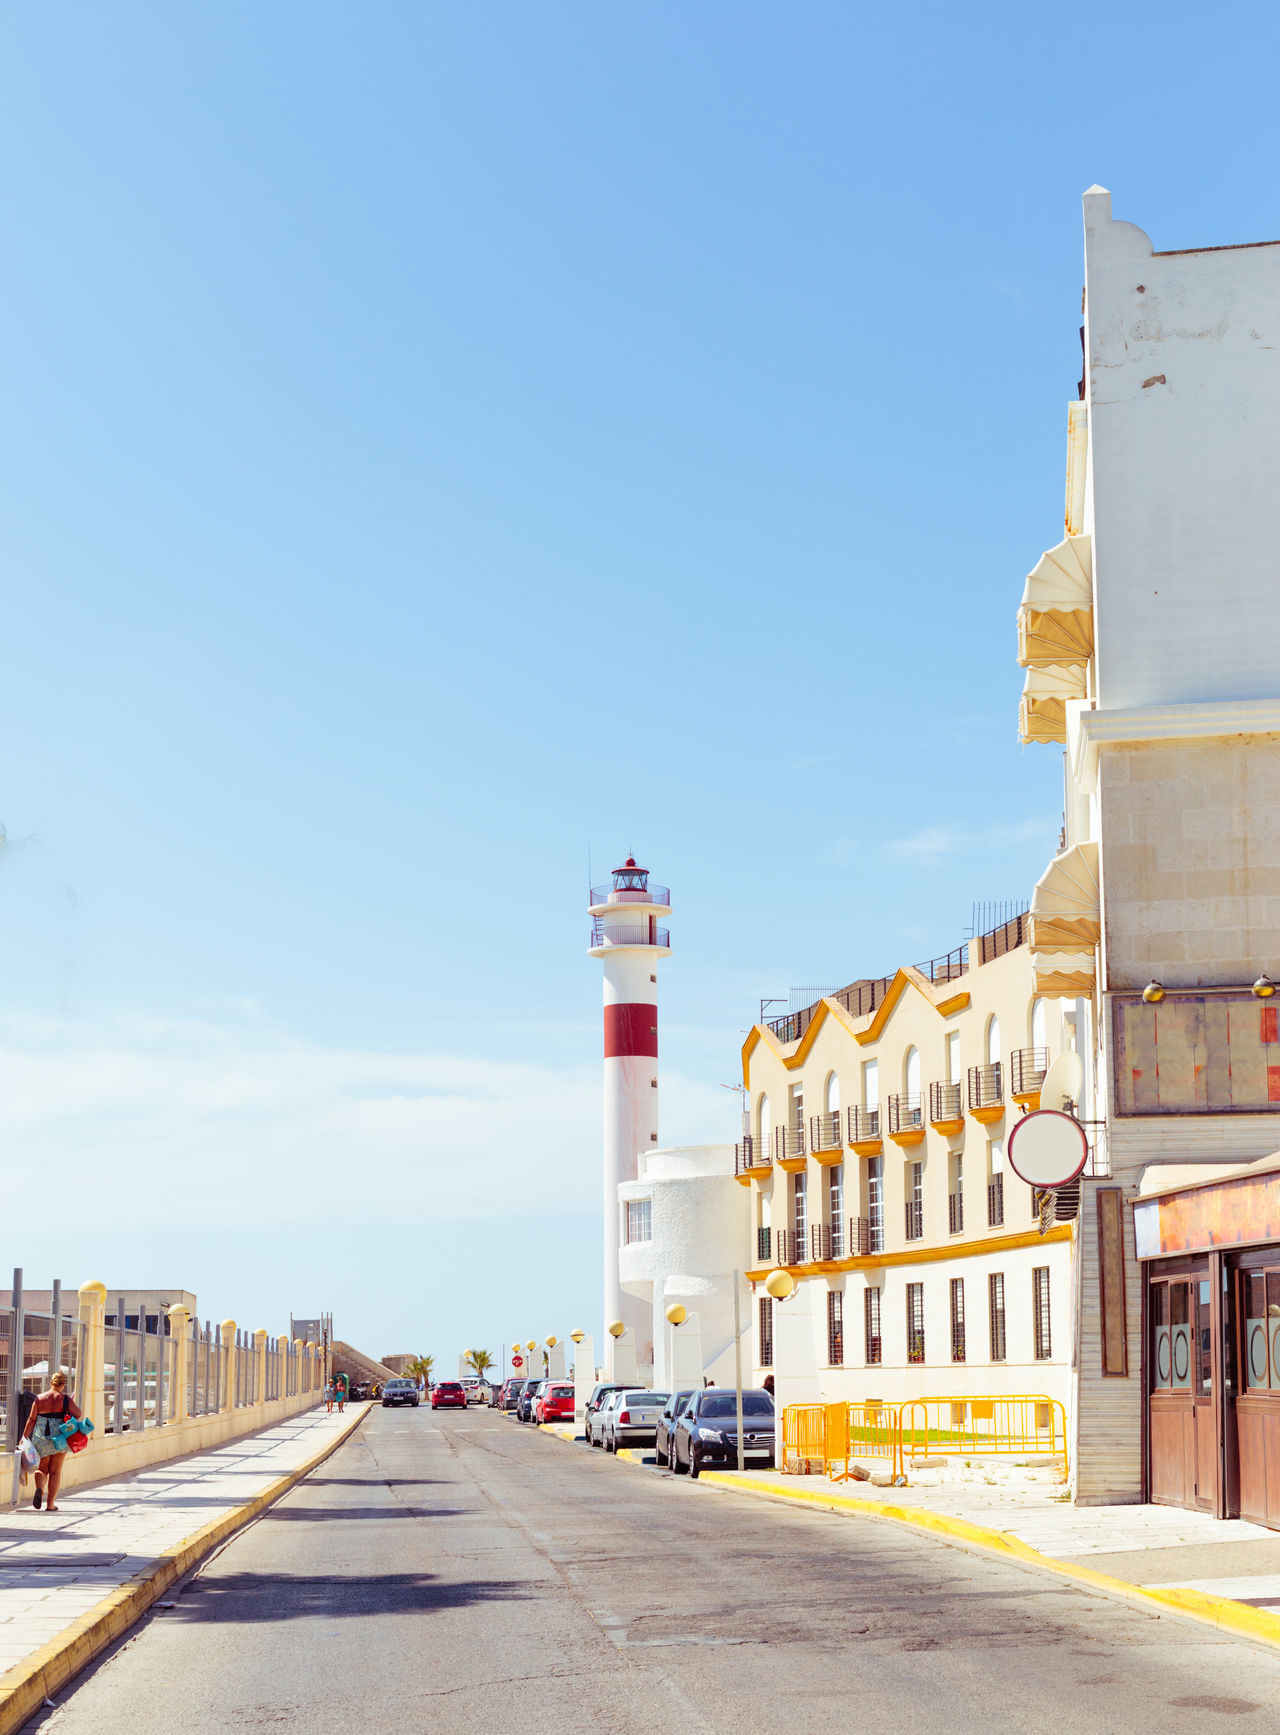 Tourism in spain. Vintage view of the lighthouse in Rota, Cadiz, Spain. Beach Cadiz Coast Coastline Europe Lighthouse Marina Mediterranean  Palm Palm Tree Promenade Scenics Sea Seaide Sunny Tourism Travel Vacation Vintage Water